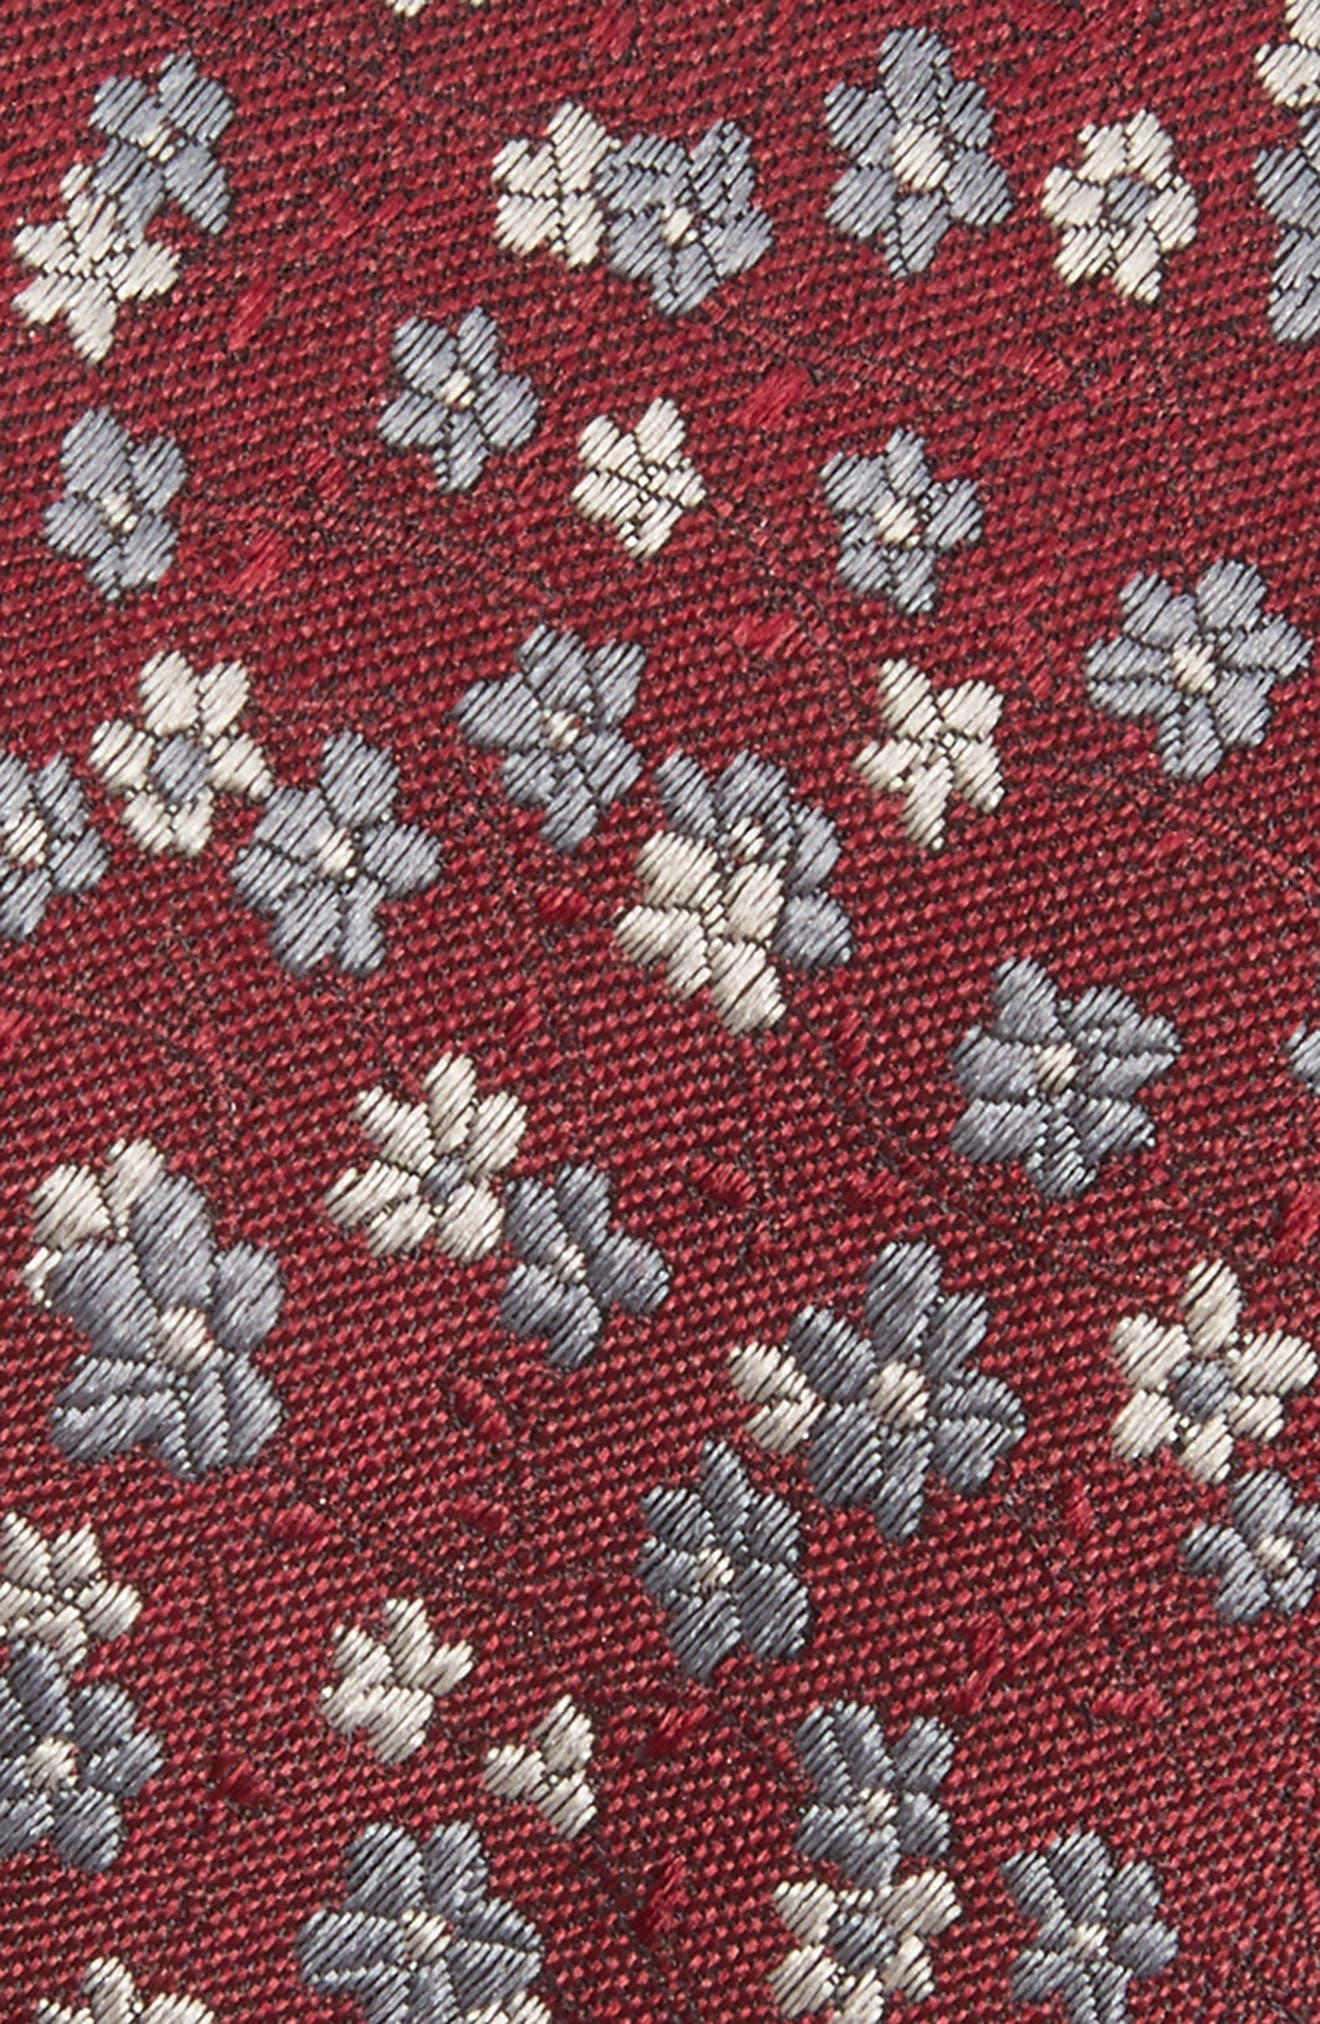 Freefall Floral Silk Tie,                             Alternate thumbnail 18, color,